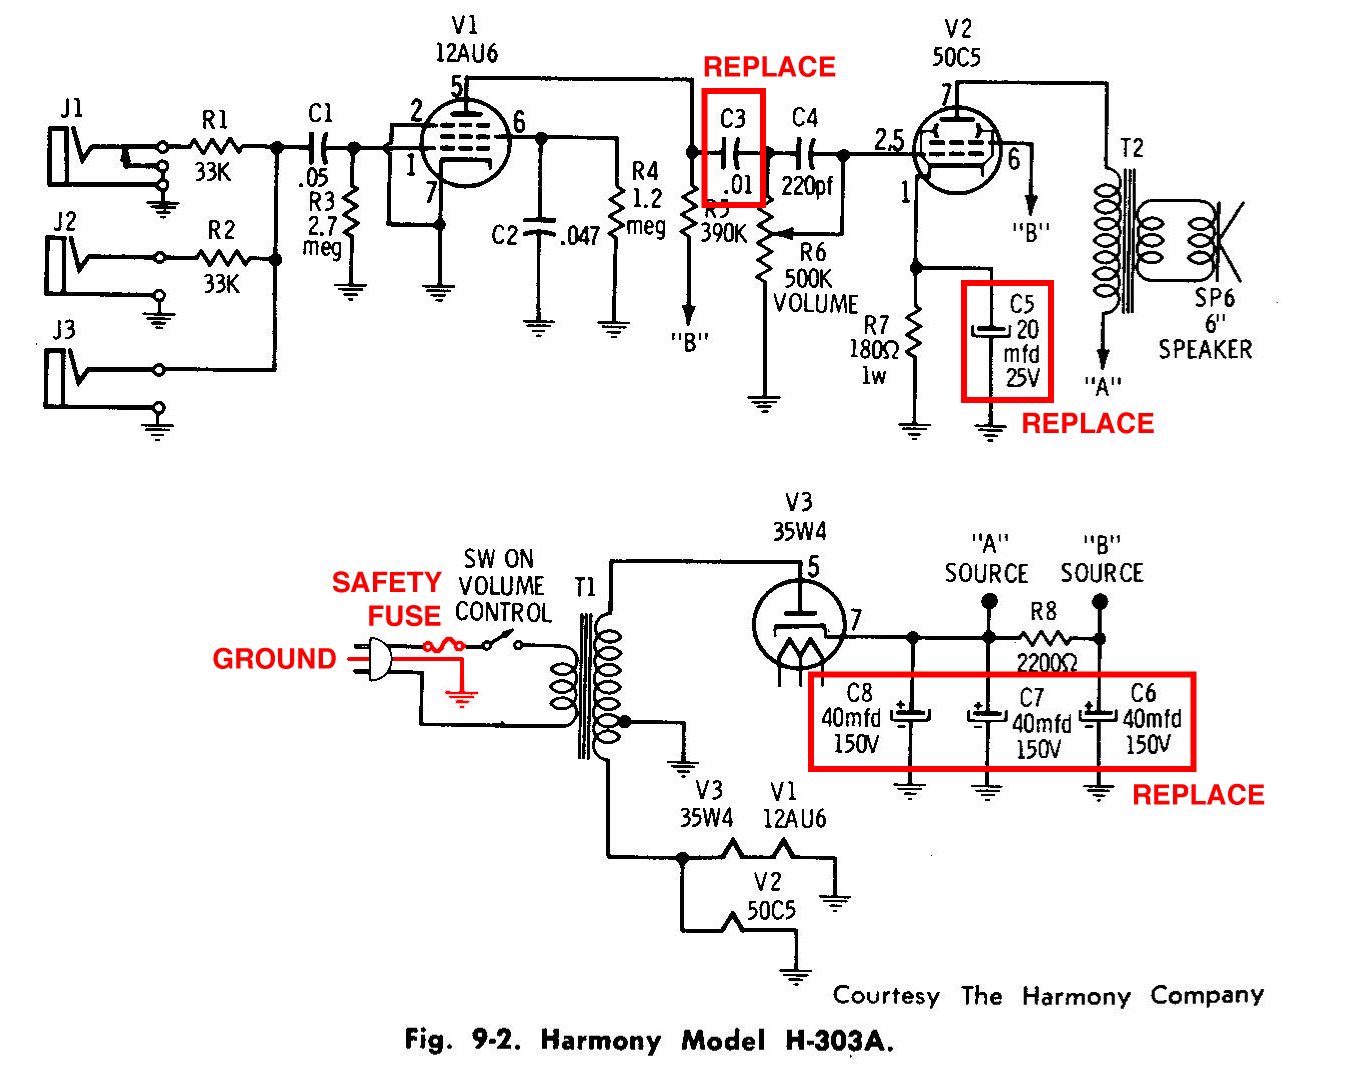 Car Amp Diagram Schematics Wiring Diagrams Of A Amplifier Rebuilding Vintage Tube Slackpropagation Installation Speaker